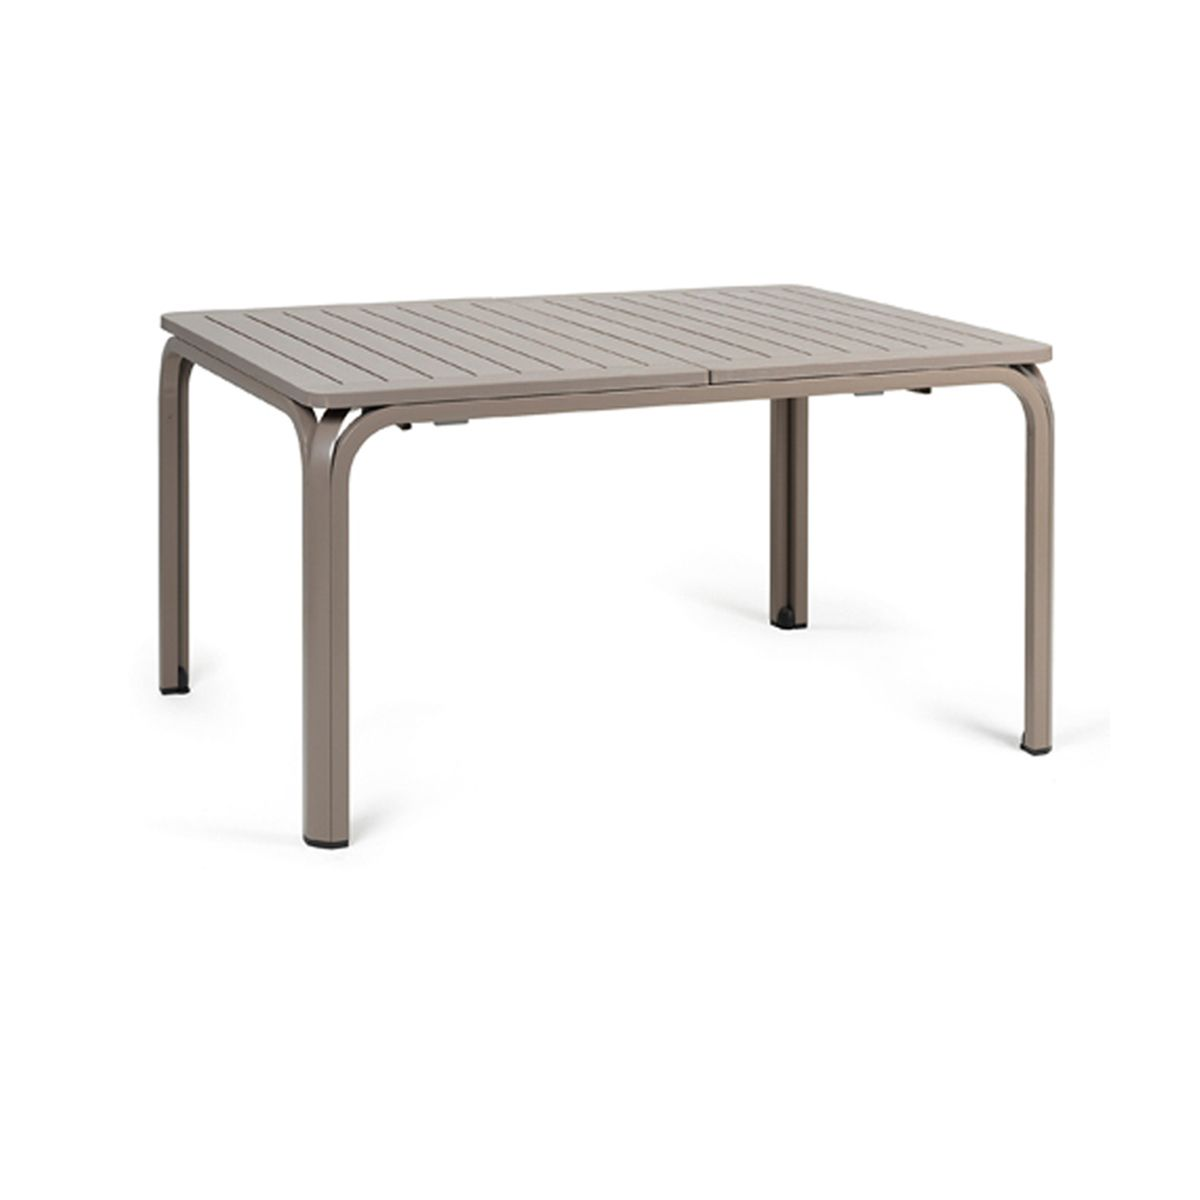 Table extensible de jardin nardi alloro 210 cm zendart for Table jardin design